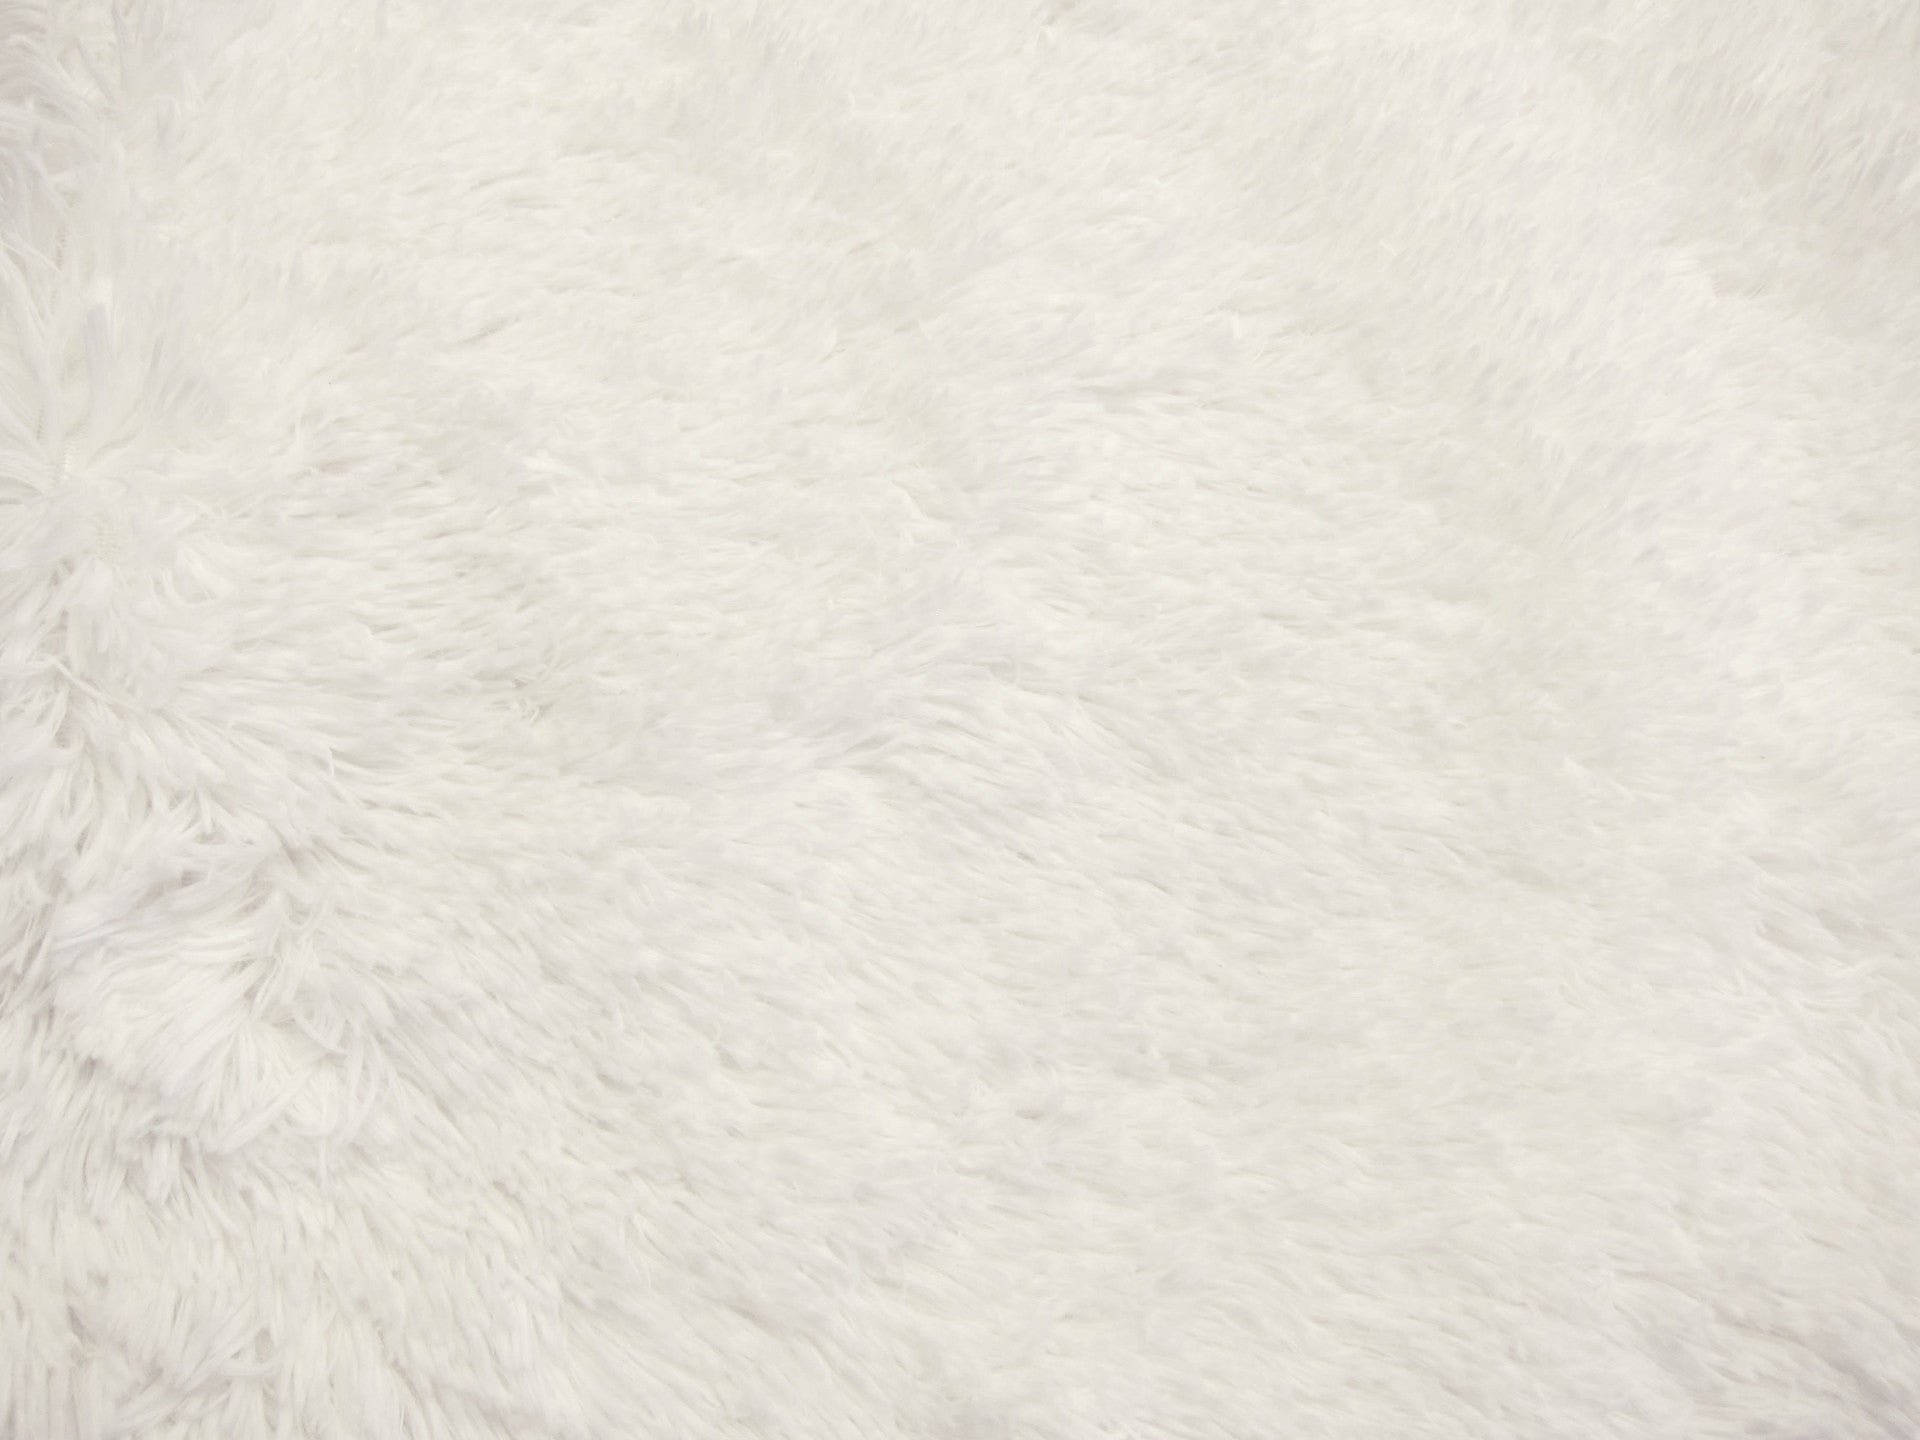 Find great deals on eBay for white faux fur. Shop with confidence.